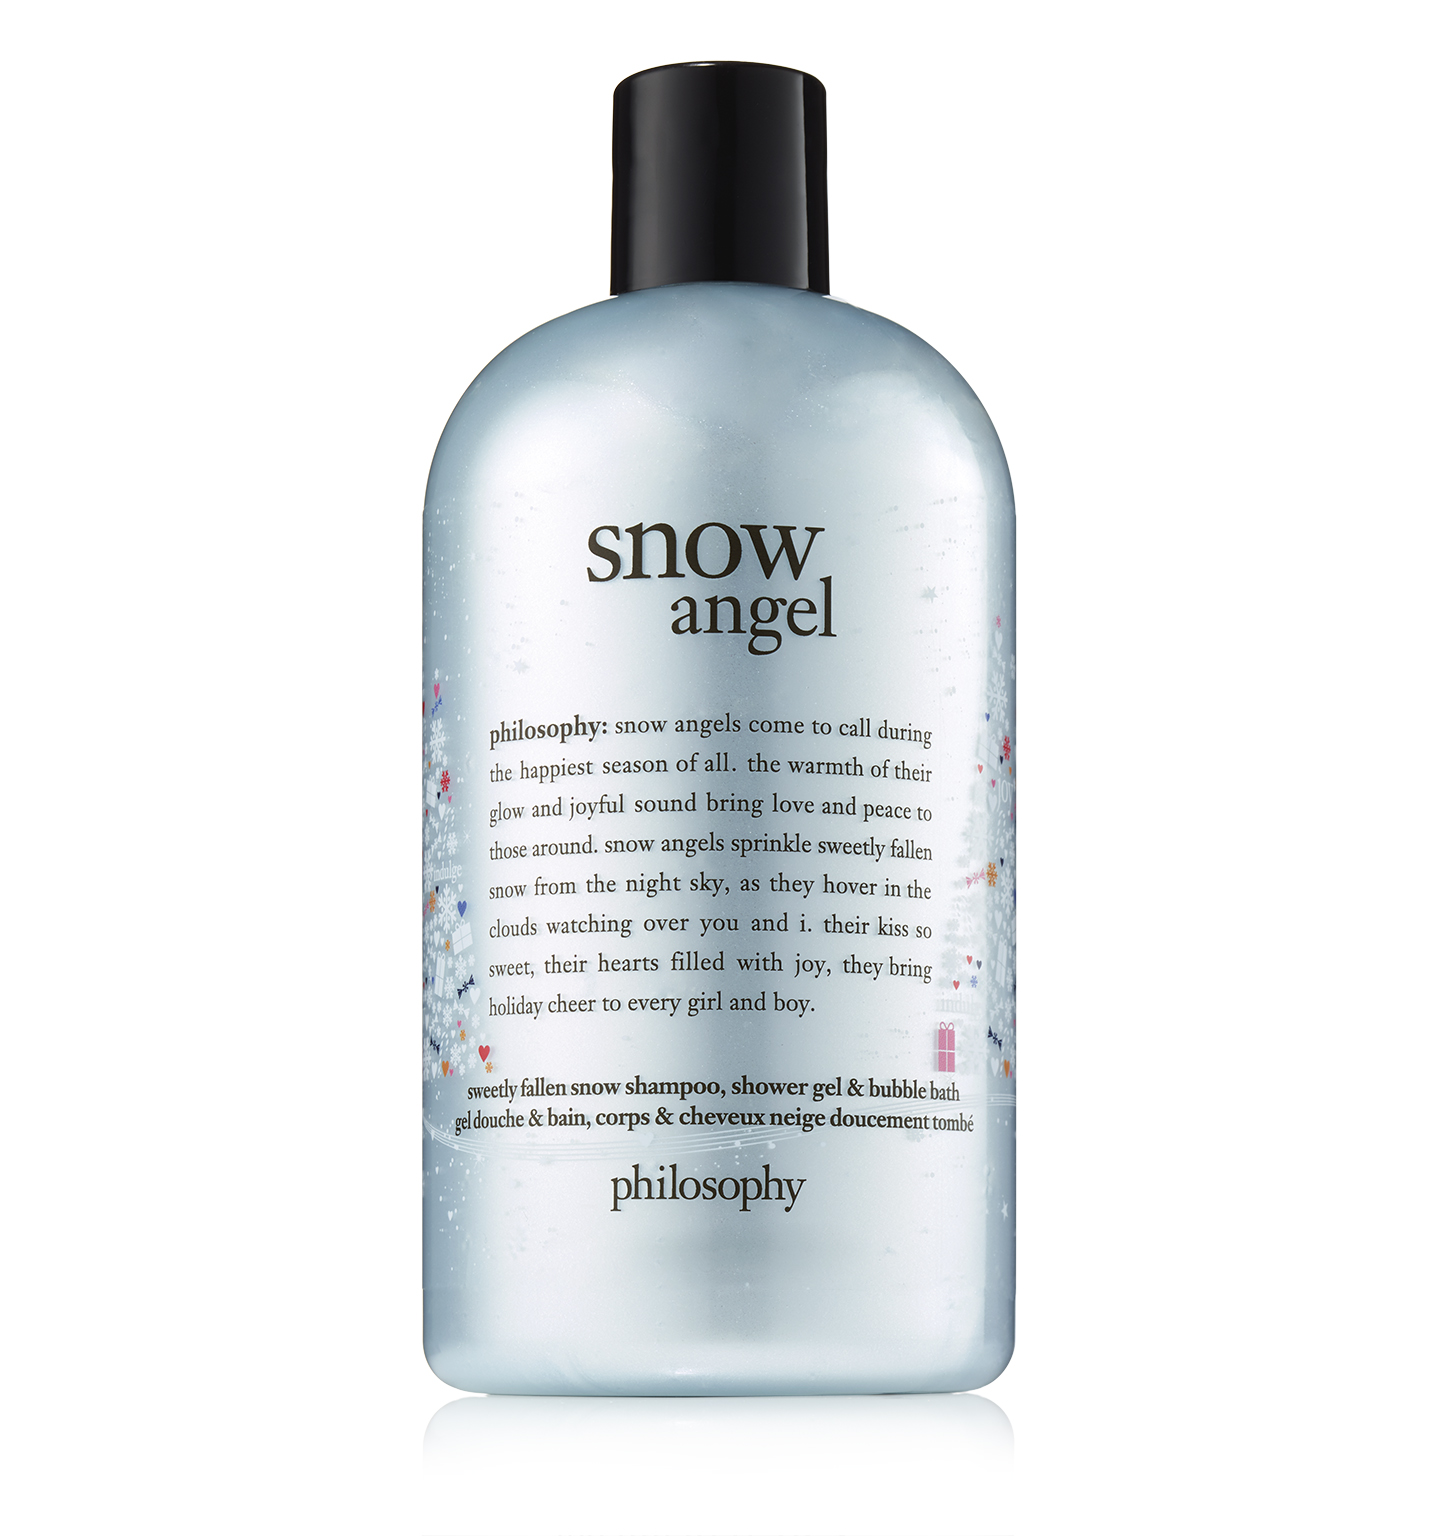 philosophy, snow angel shower gel